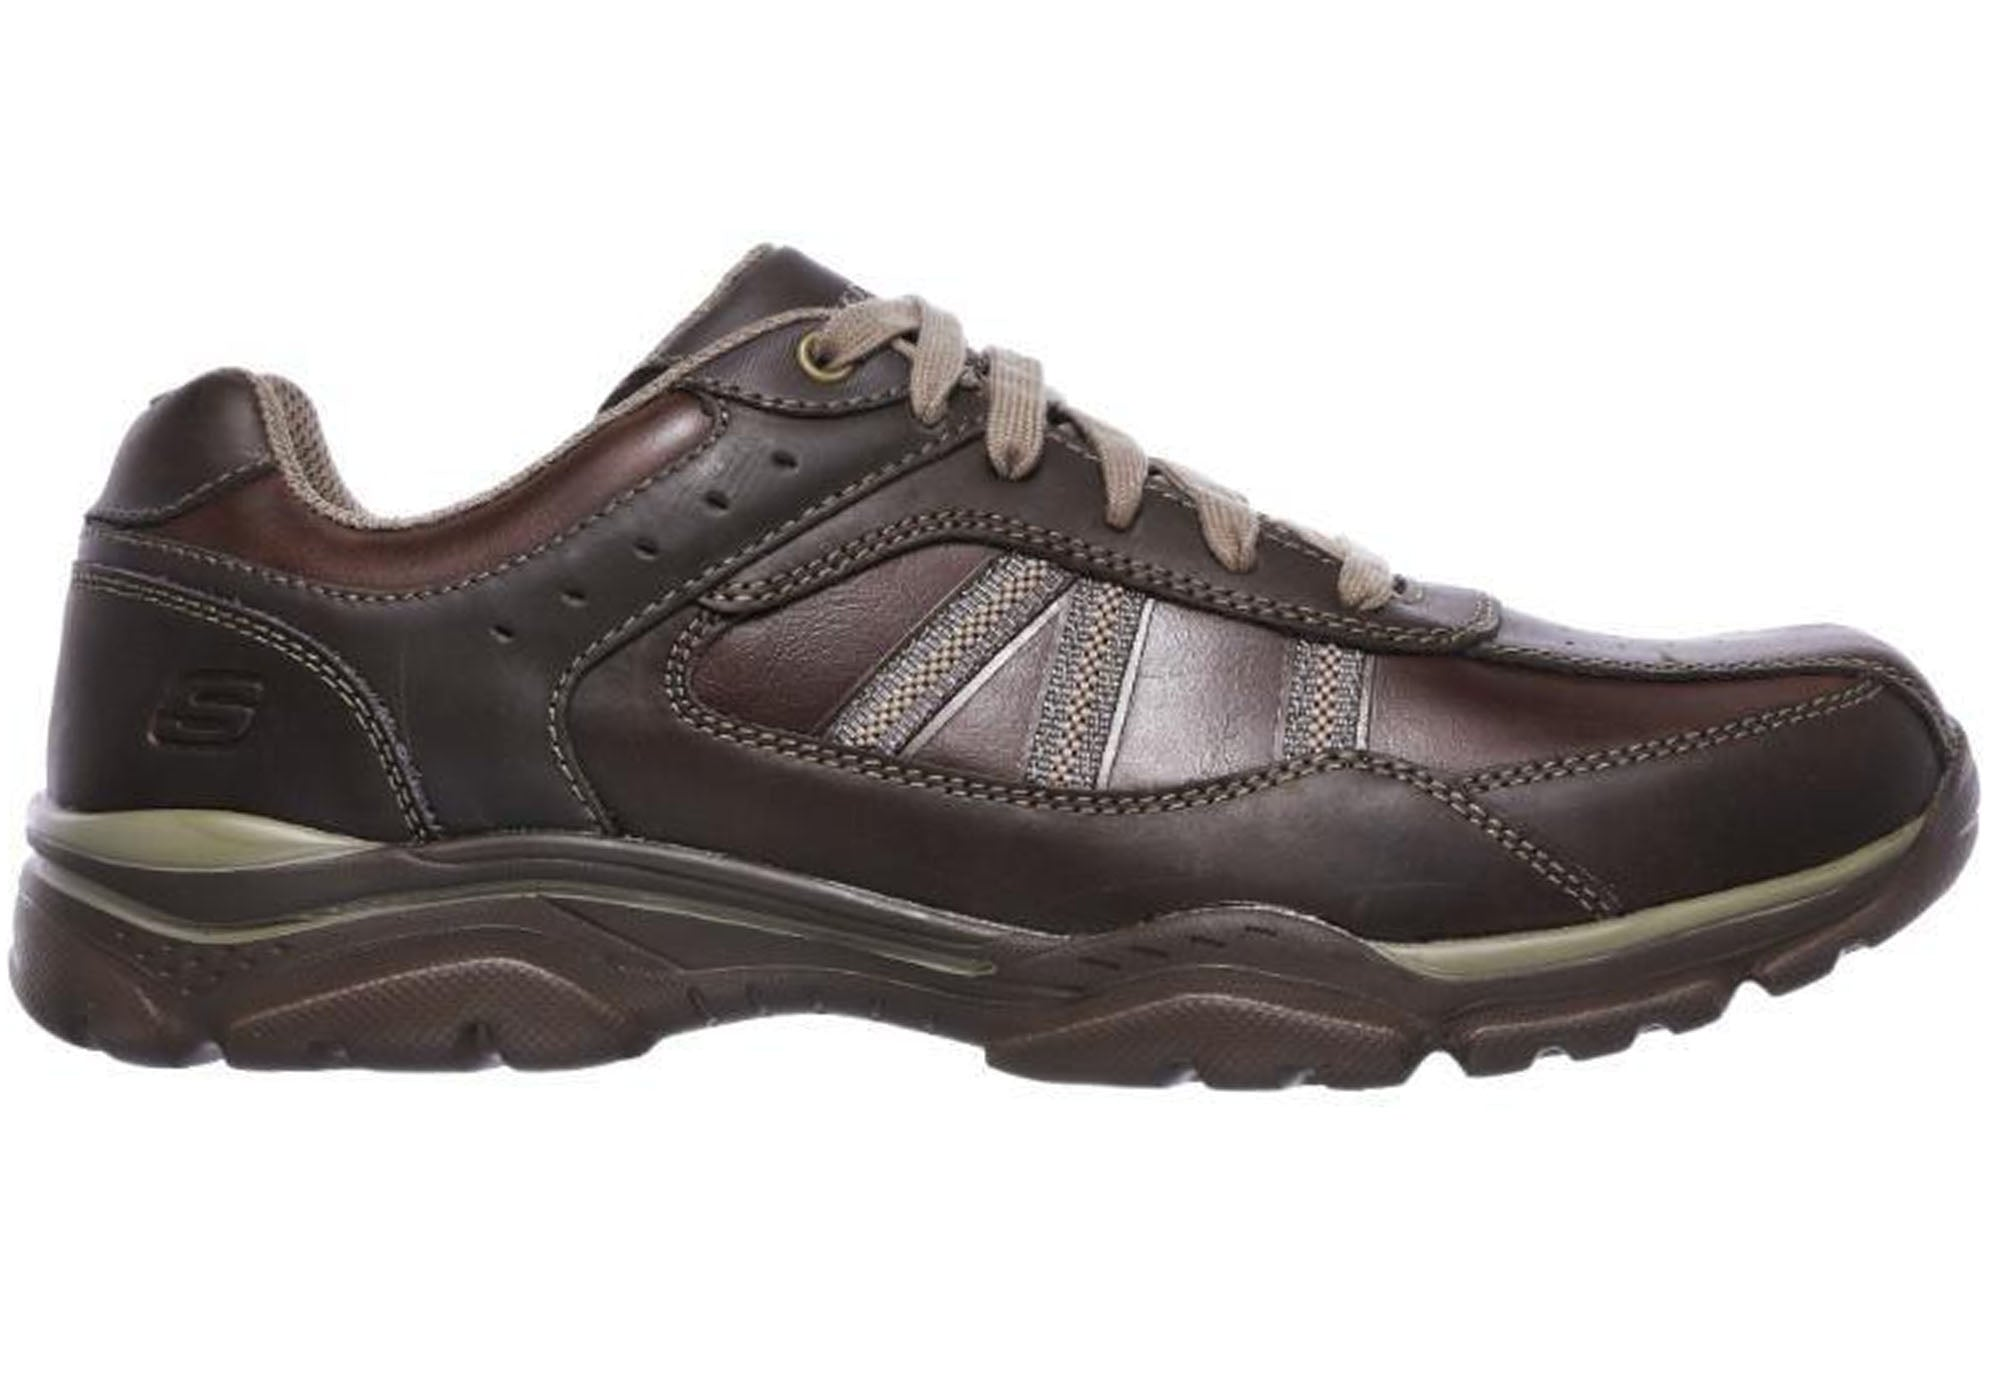 e6979c4896e85 Home Skechers Mens Rovato Texon Relaxed Fit Memory Foam Lace Up Wide Shoes.  Black/Taupe; Chocolate ...